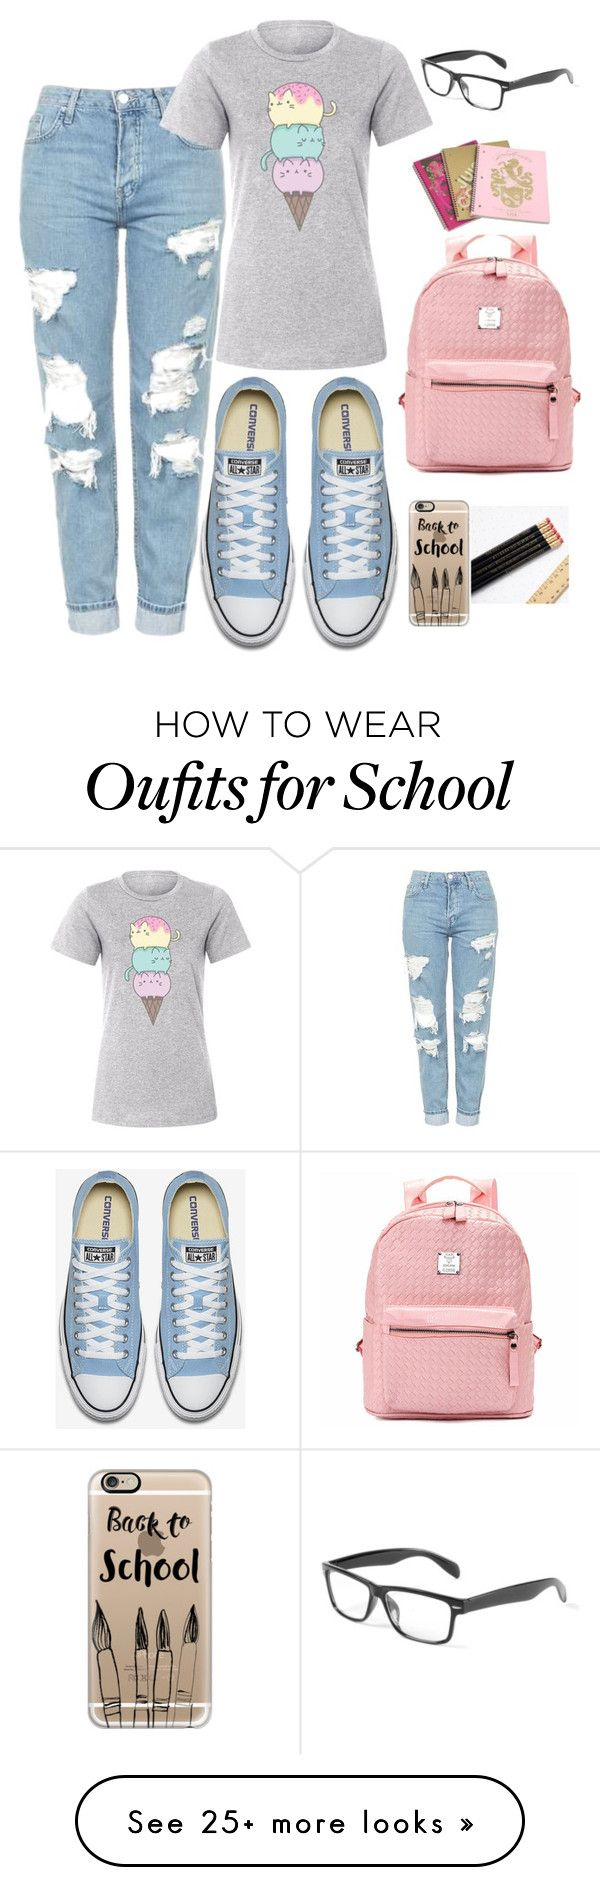 """""""Back to school"""" by lizz-med on Polyvore featuring Topshop, Pusheen, Juicy Couture and Casetify"""